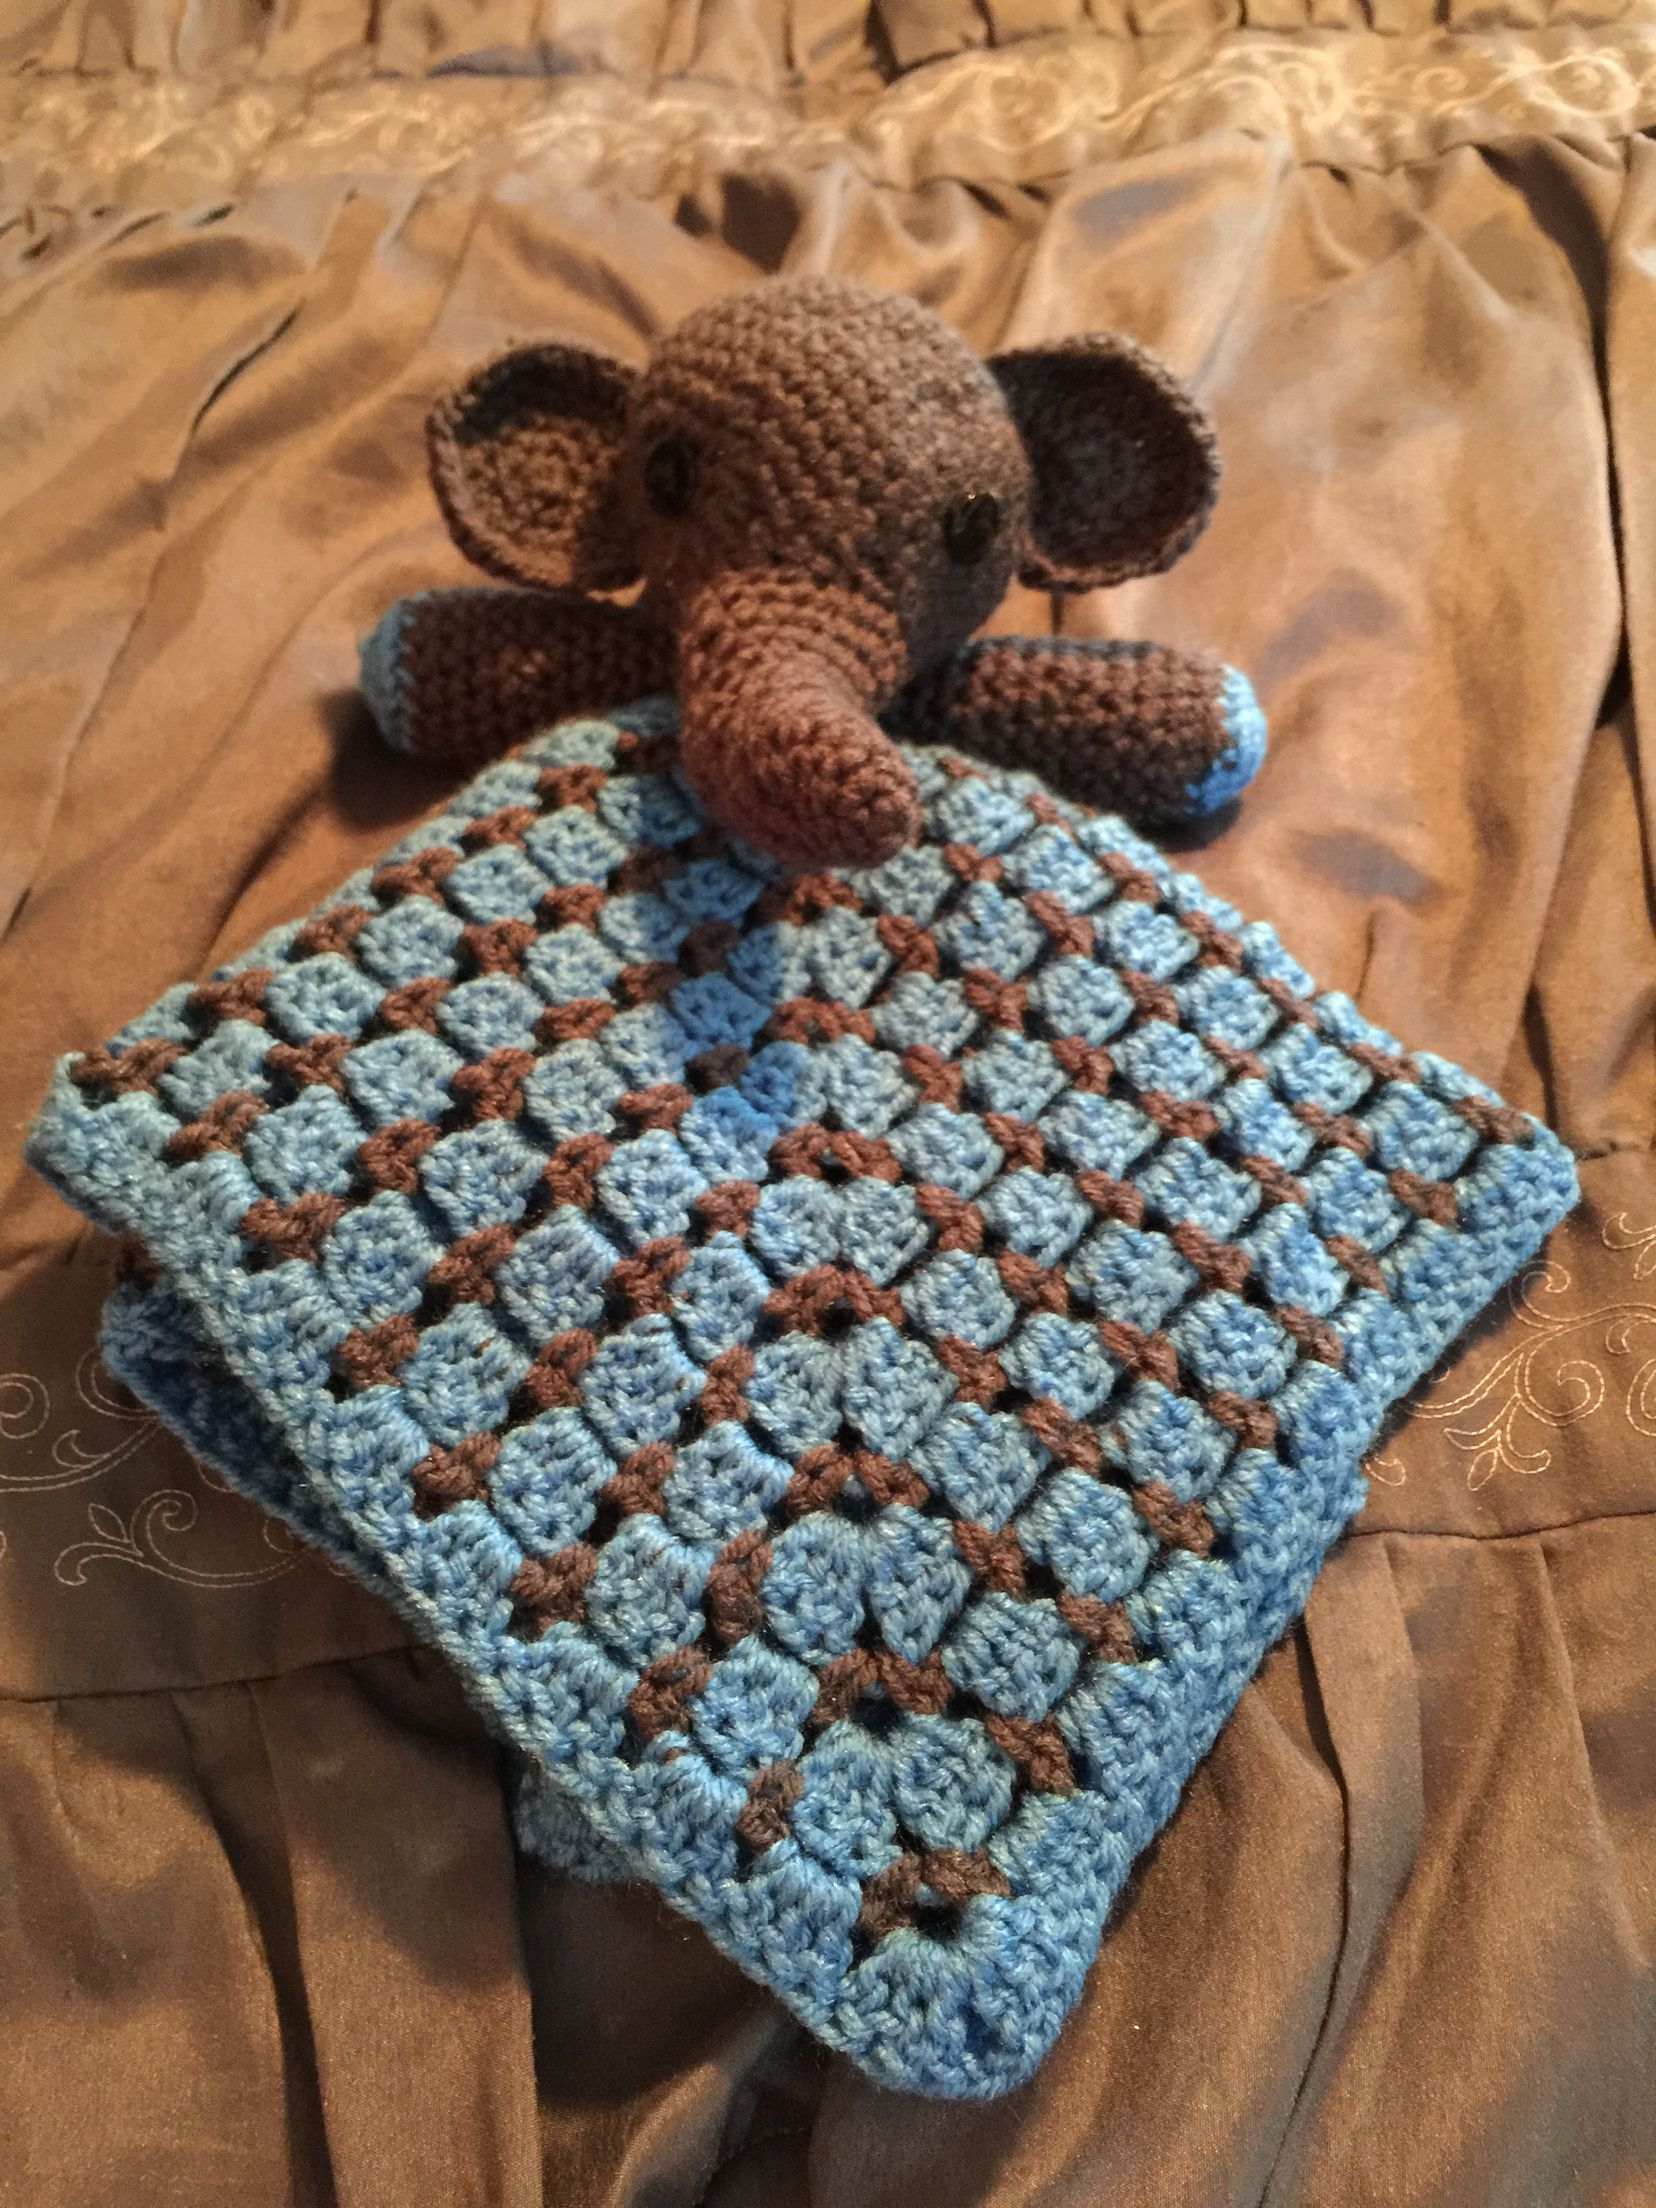 Crochet elephant snuggle buddy with block stitch granny square ...